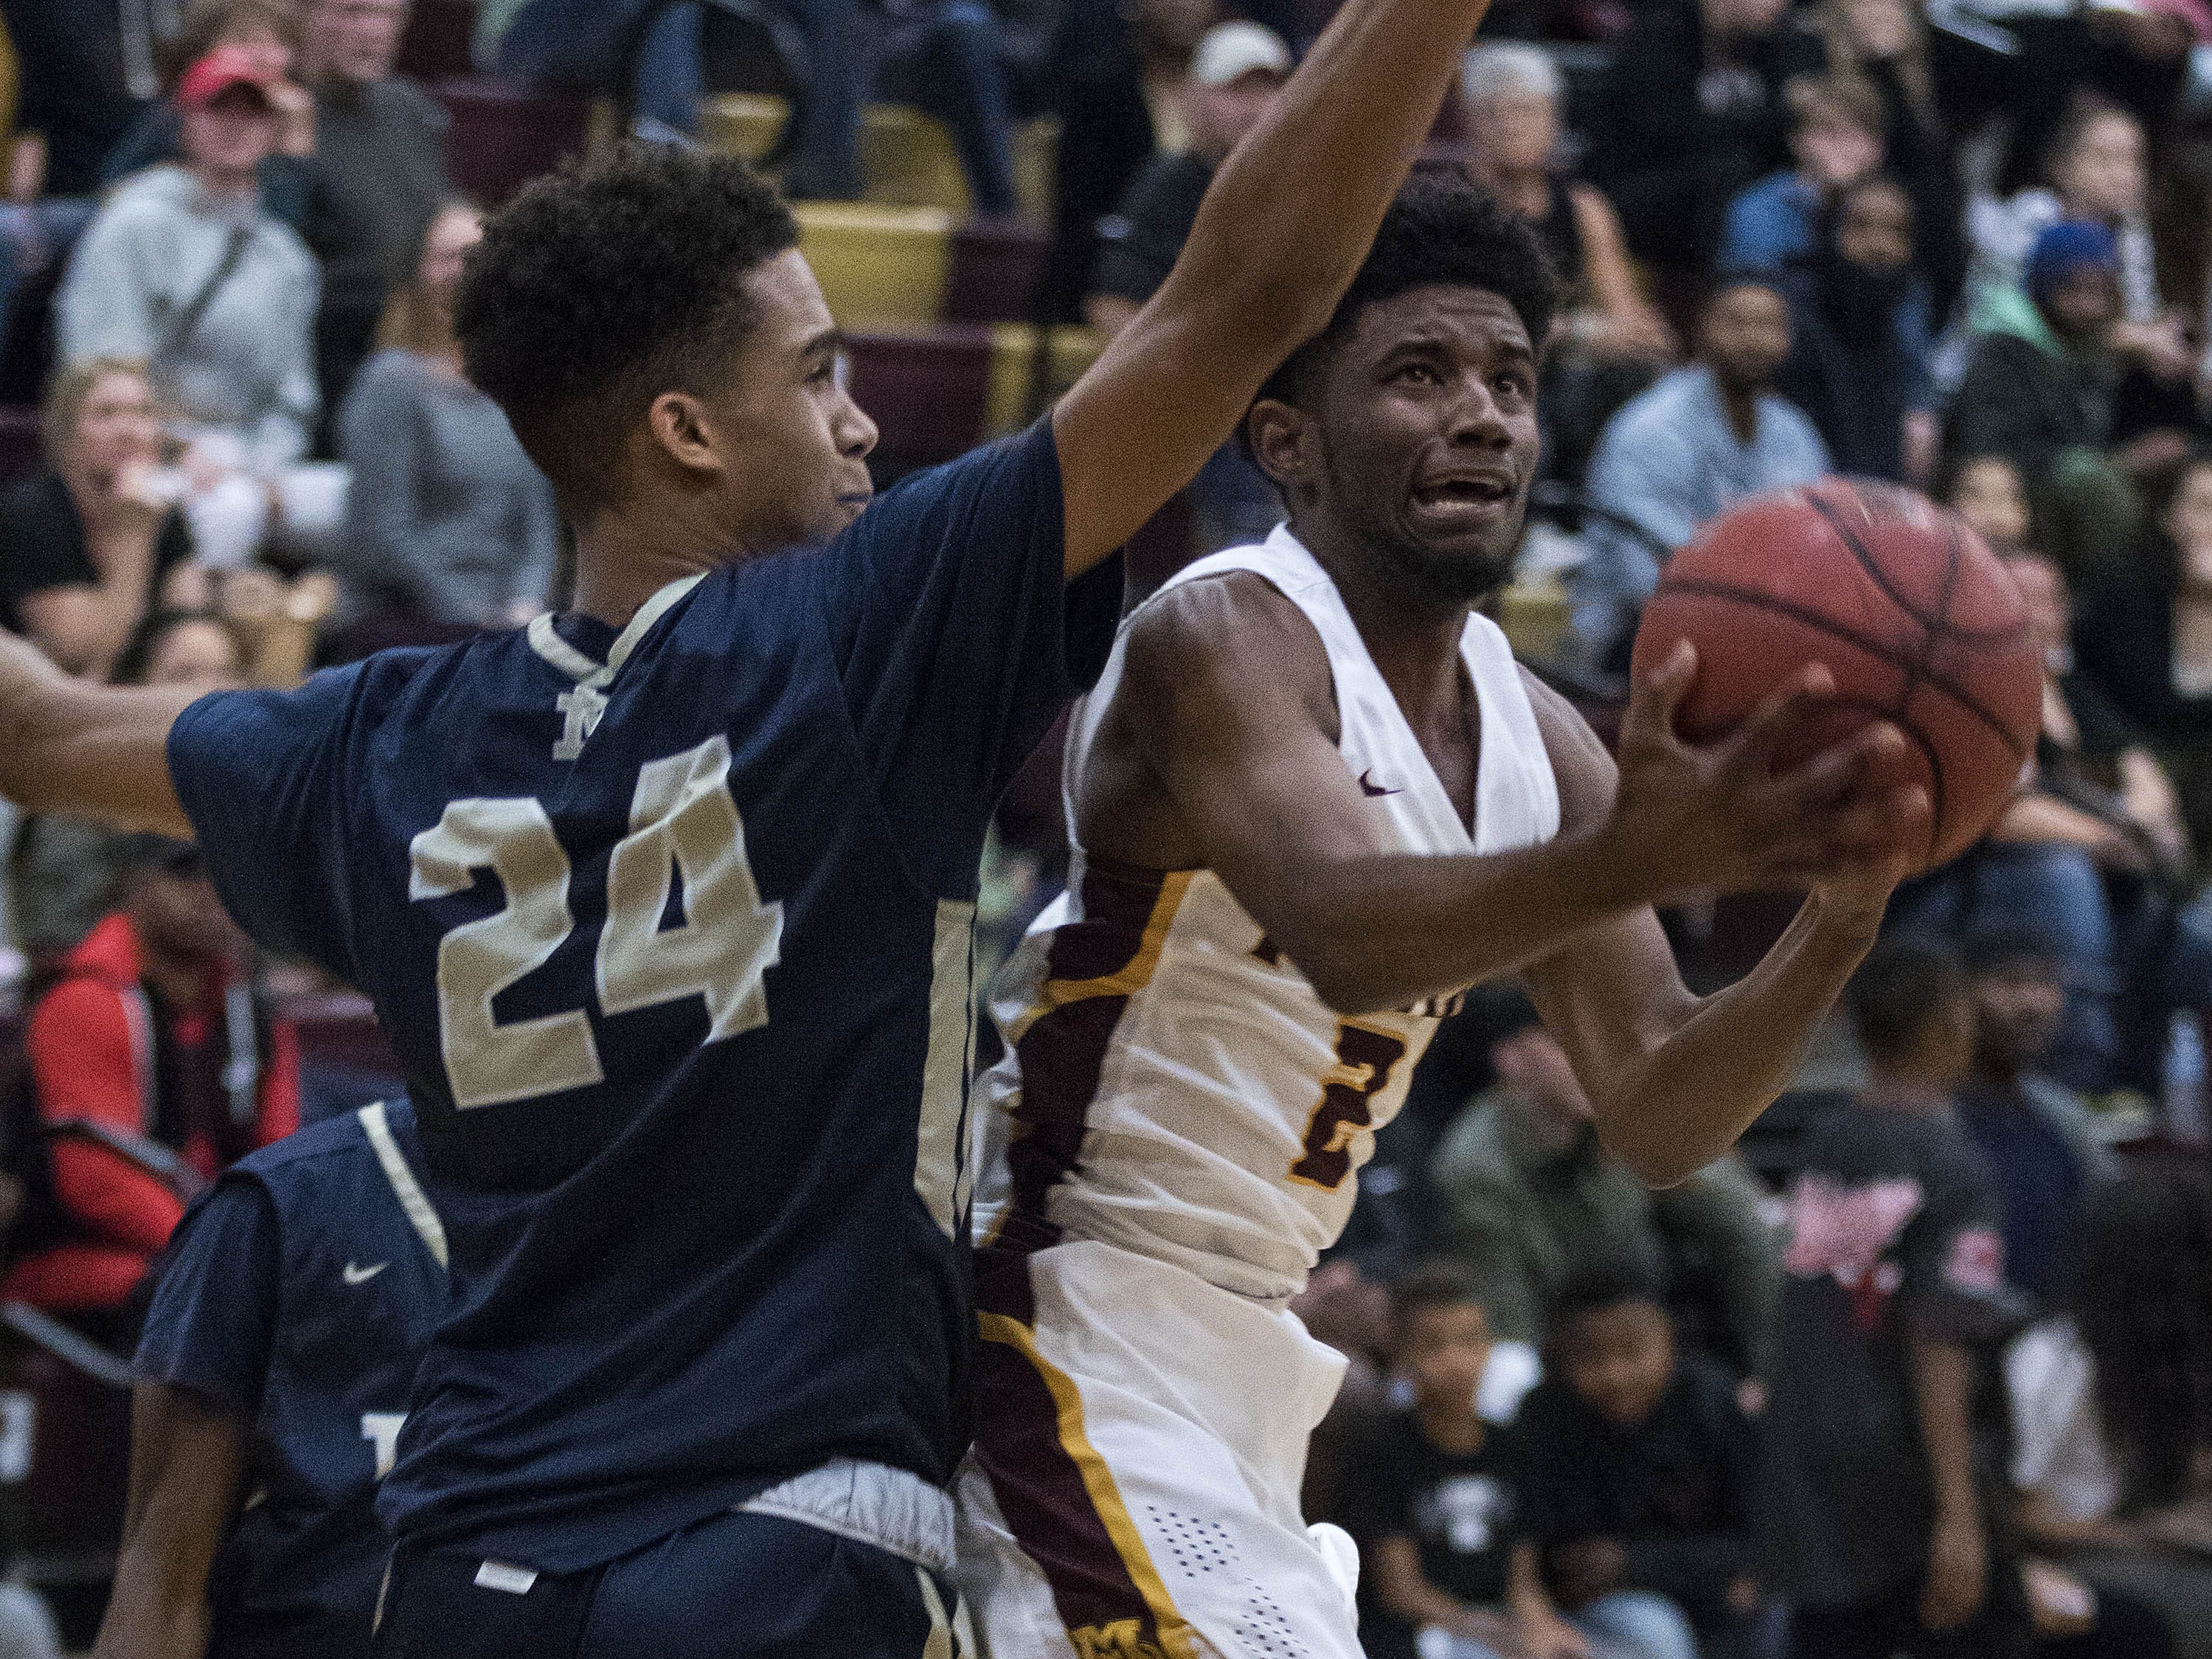 Mountain Pointe's Khalid Price (2) drives against Desert Vista's Osasere Ighodaro (24) during their game in Phoenix on Tuesday, Jan. 29.